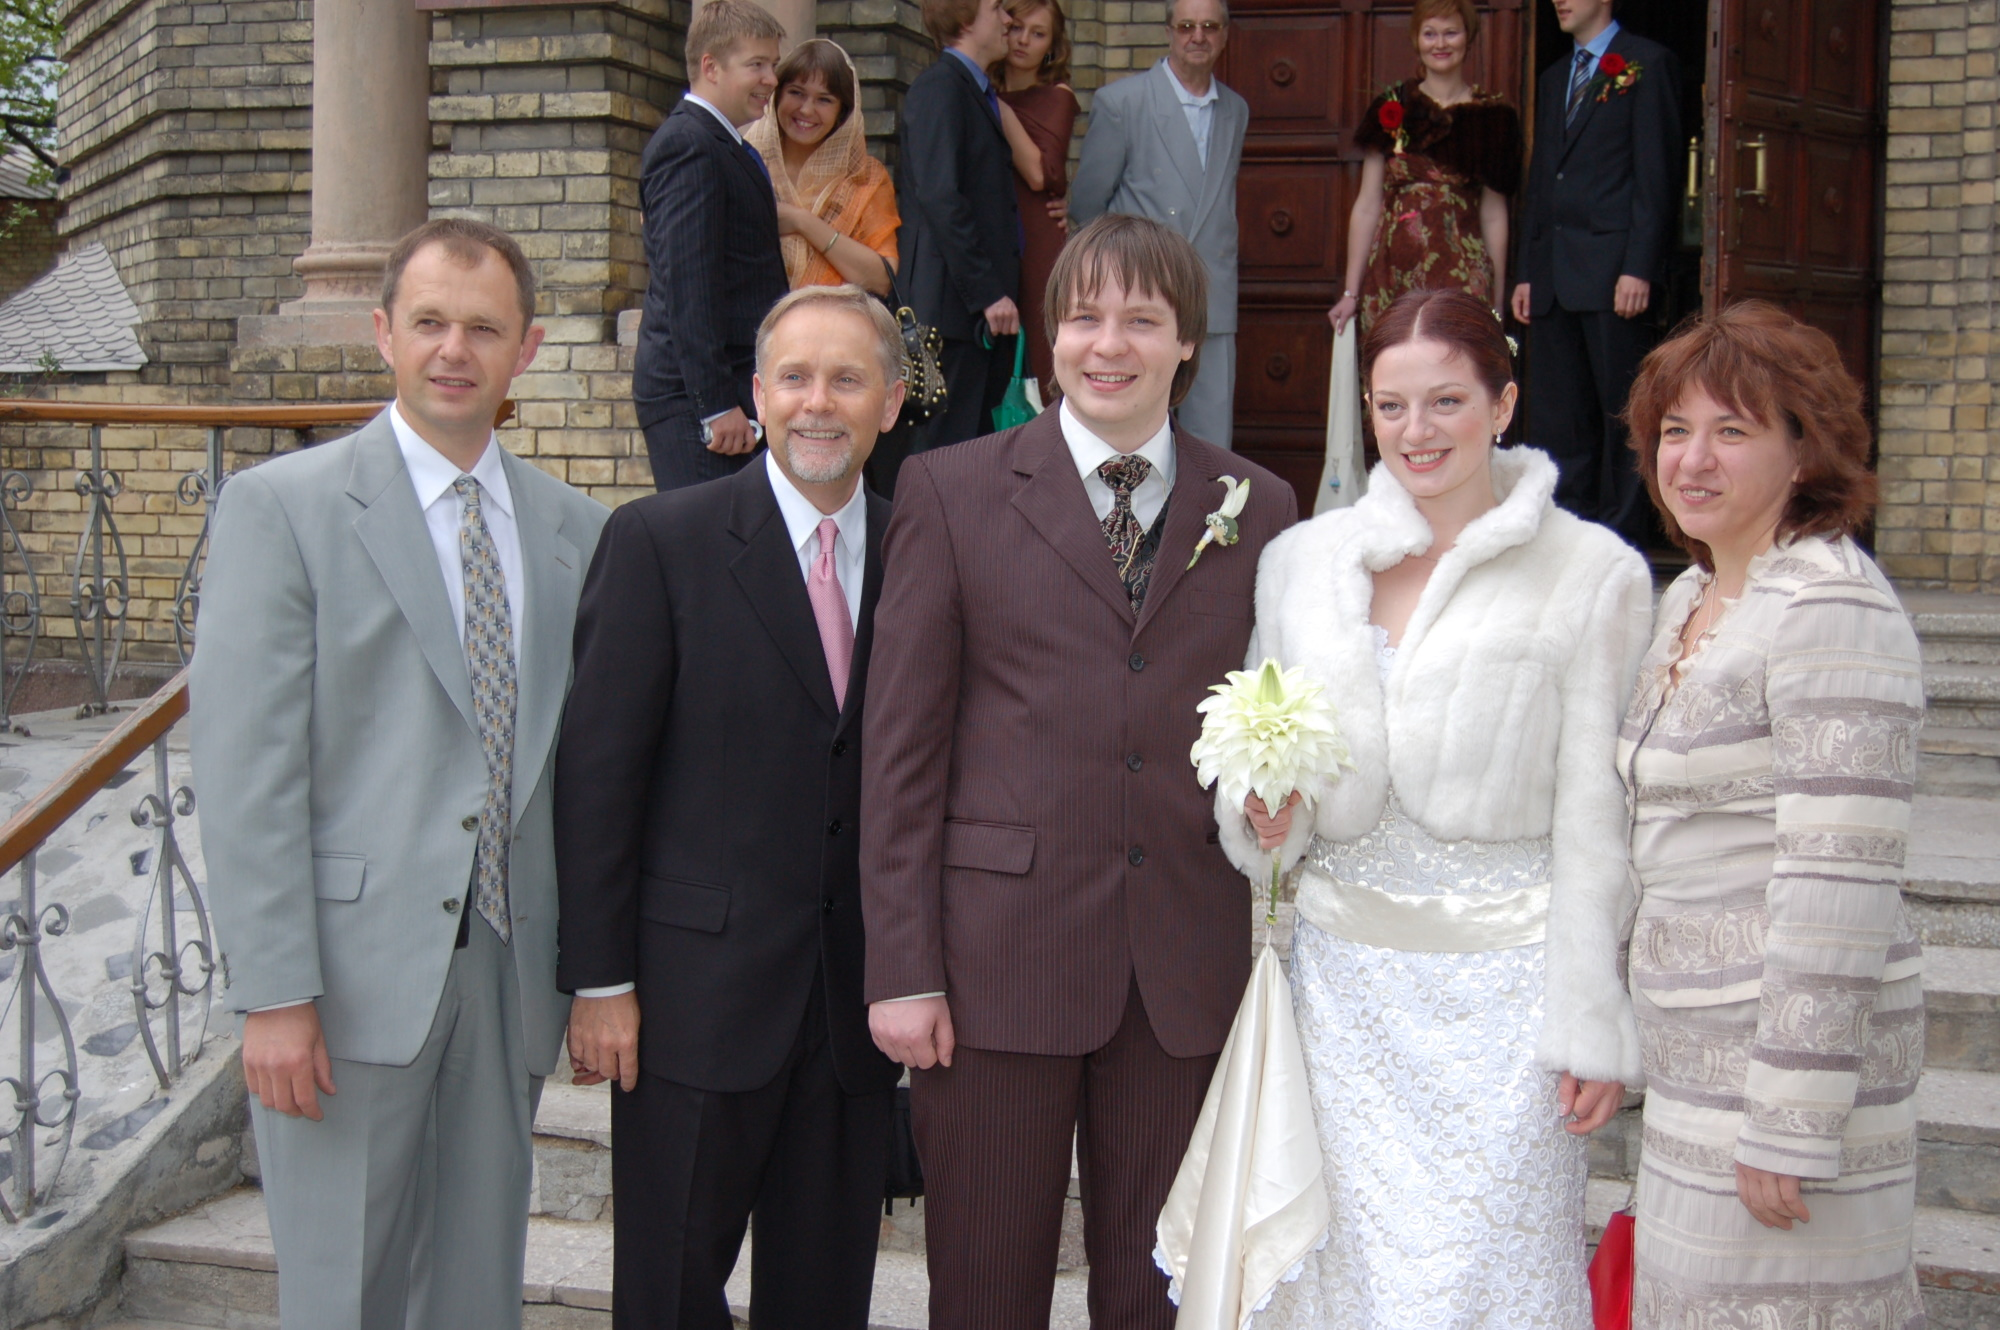 Kevin, P, M and others in front of the church